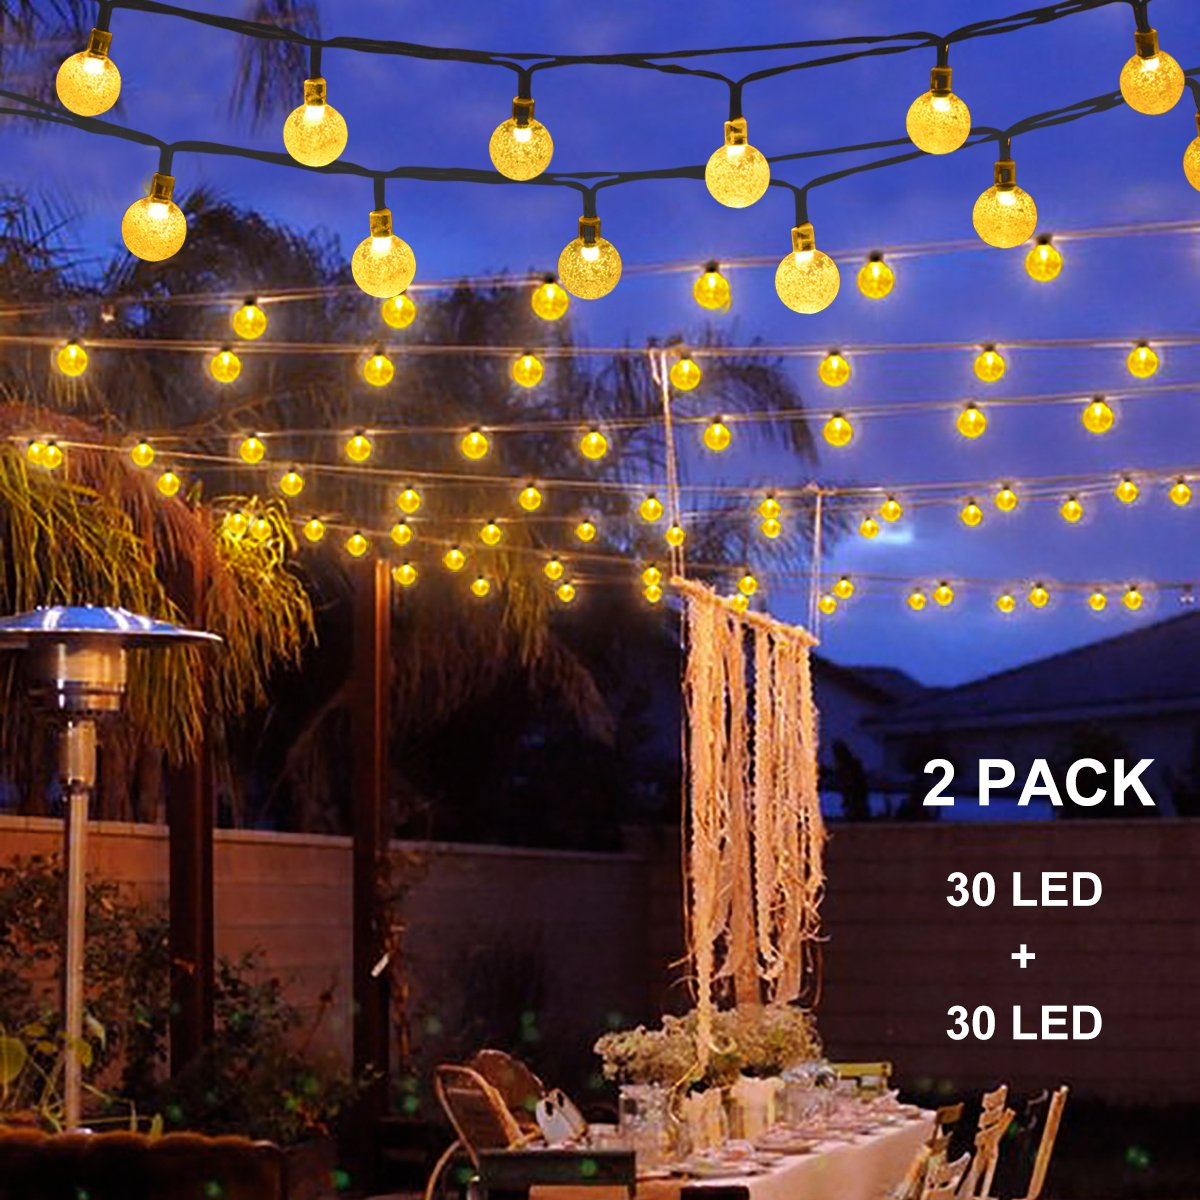 Landscape Lights For House: Binval Solar String Lights For Outdoor Patio Lawn